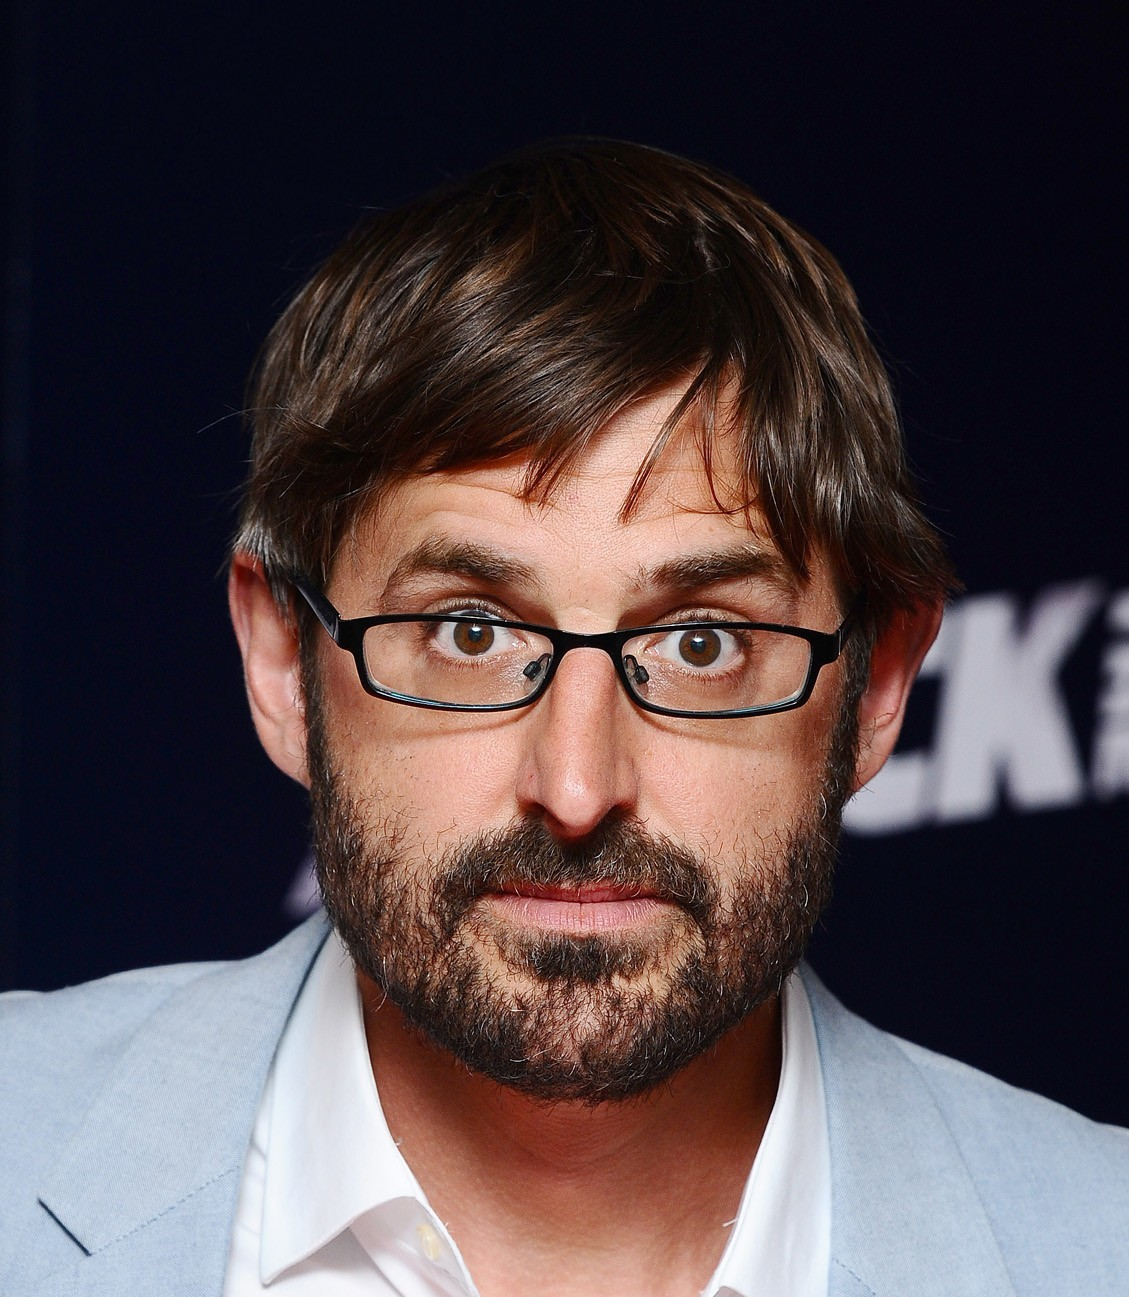 louis theroux movieslouis theroux ultra zionists, louis theroux scientology, louis theroux my scientology movie, louis theroux scientology watch online, louis theroux young, louis theroux movies, louis theroux love, louis theroux ufo, louis theroux online, louis theroux episodes, louis theroux from the yogscast, louis theroux best, louis theroux imdb, louis theroux contact, louis theroux card, louis theroux watch, louis theroux savile, louis theroux bbc, louis theroux stream, louis theroux watch online